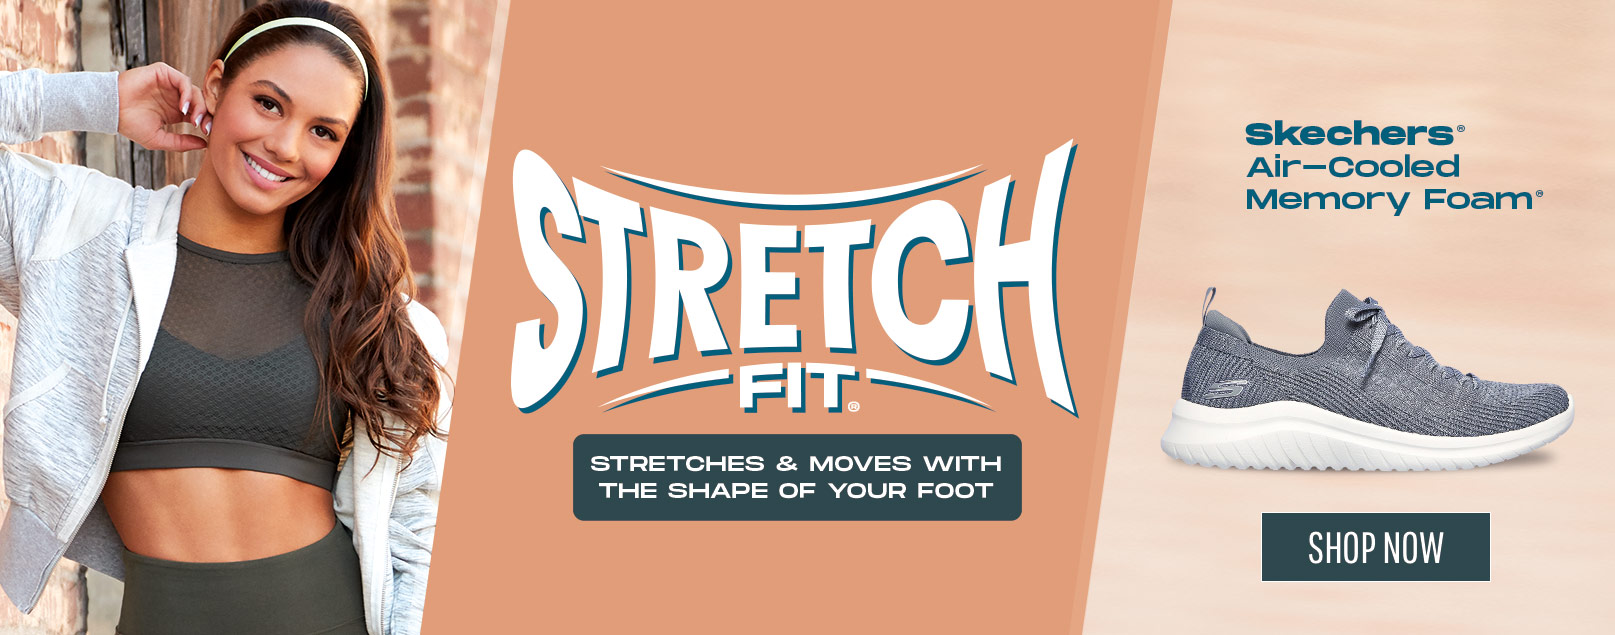 Find the ultimate flexible comfort with Skechers Stretch Fit shoes.  Stretchable material fits perfectly and moves with the shape of your foot for sock-style comfort feel.